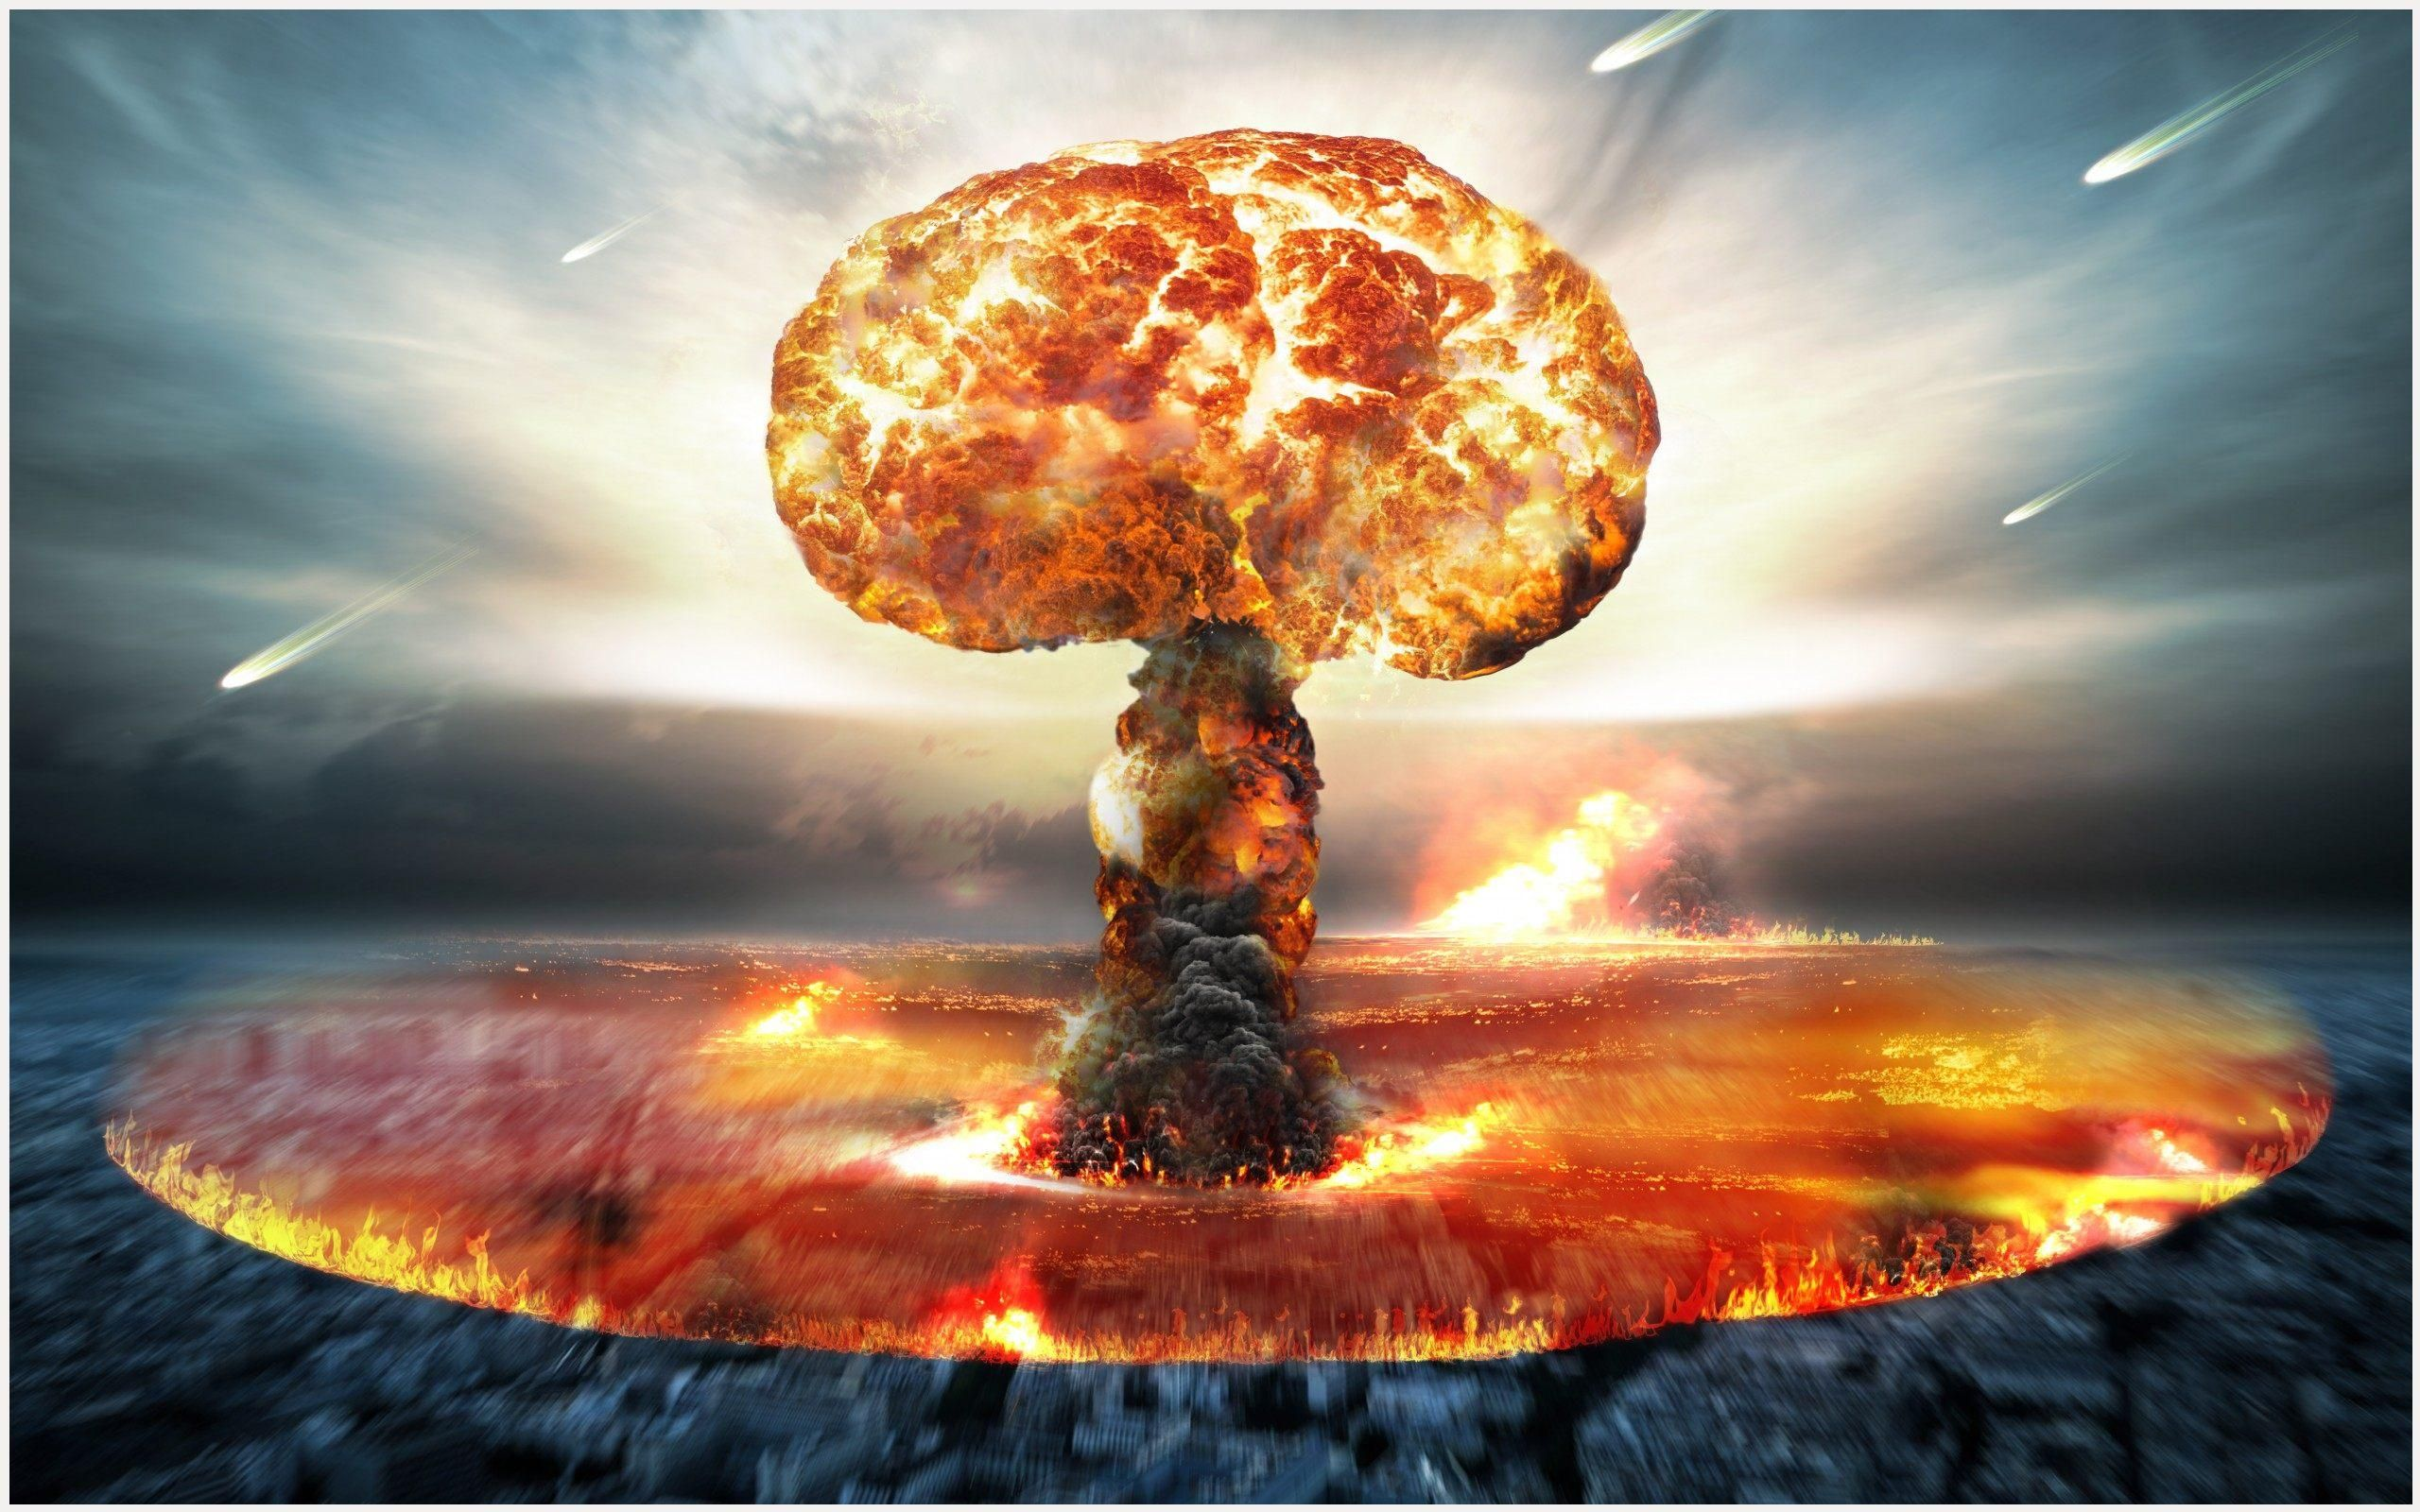 Nuclear Explosion Wallpaper Doomsday Clock Nuclear Bomb Atomic Bomb